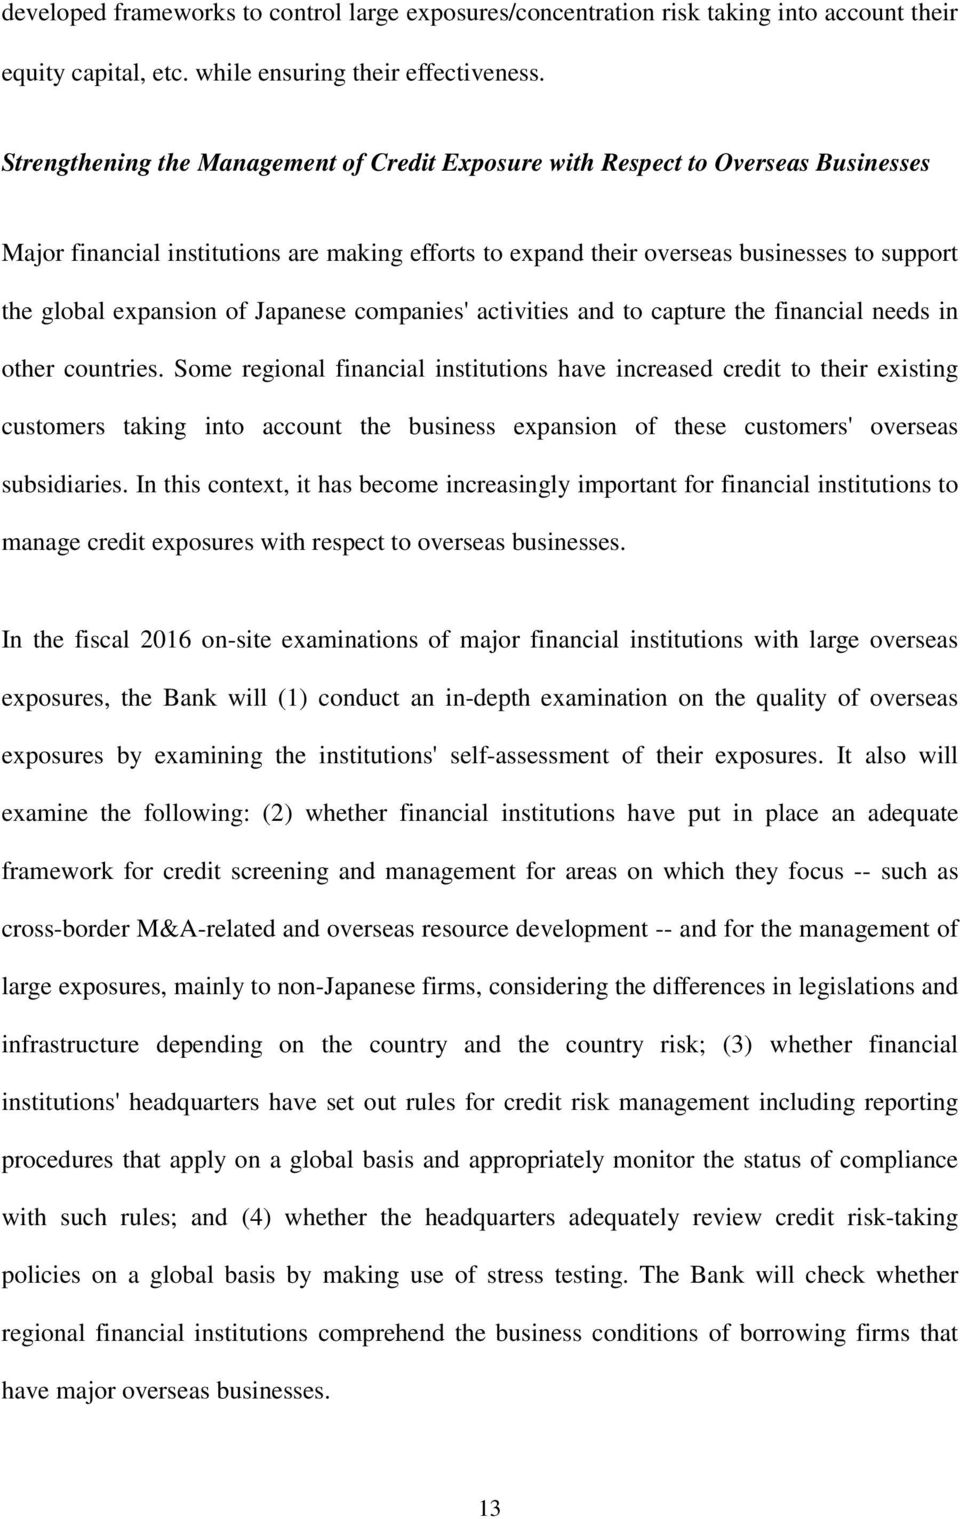 of Japanese companies' activities and to capture the financial needs in other countries.